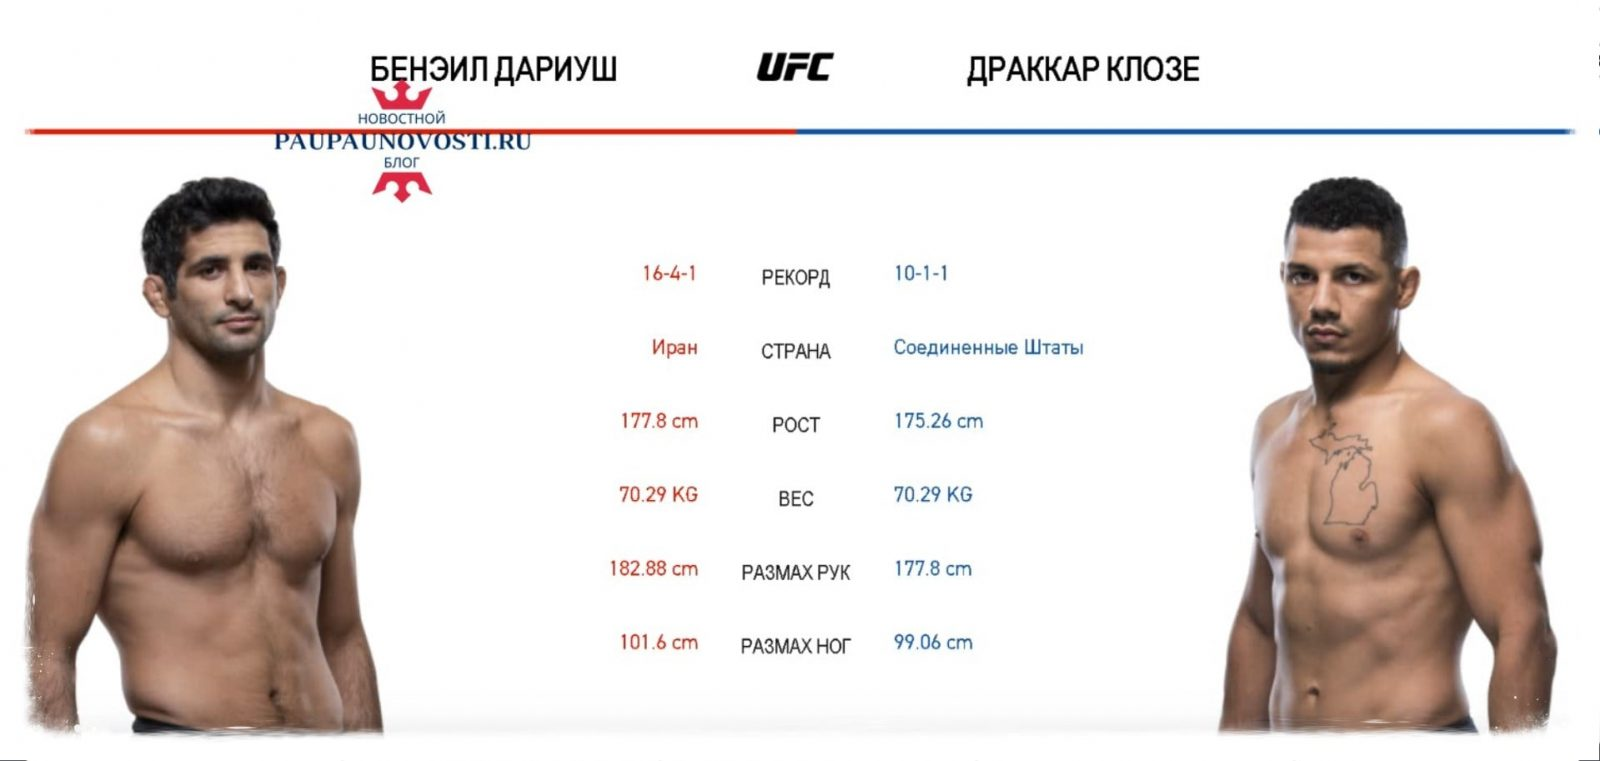 ufc-fight-night-germaine-de-randamie-vs-undefeated-aspen-ladd-data-uchastniki-i-kard-zhermen-de-randami-aspen-lehdd_4